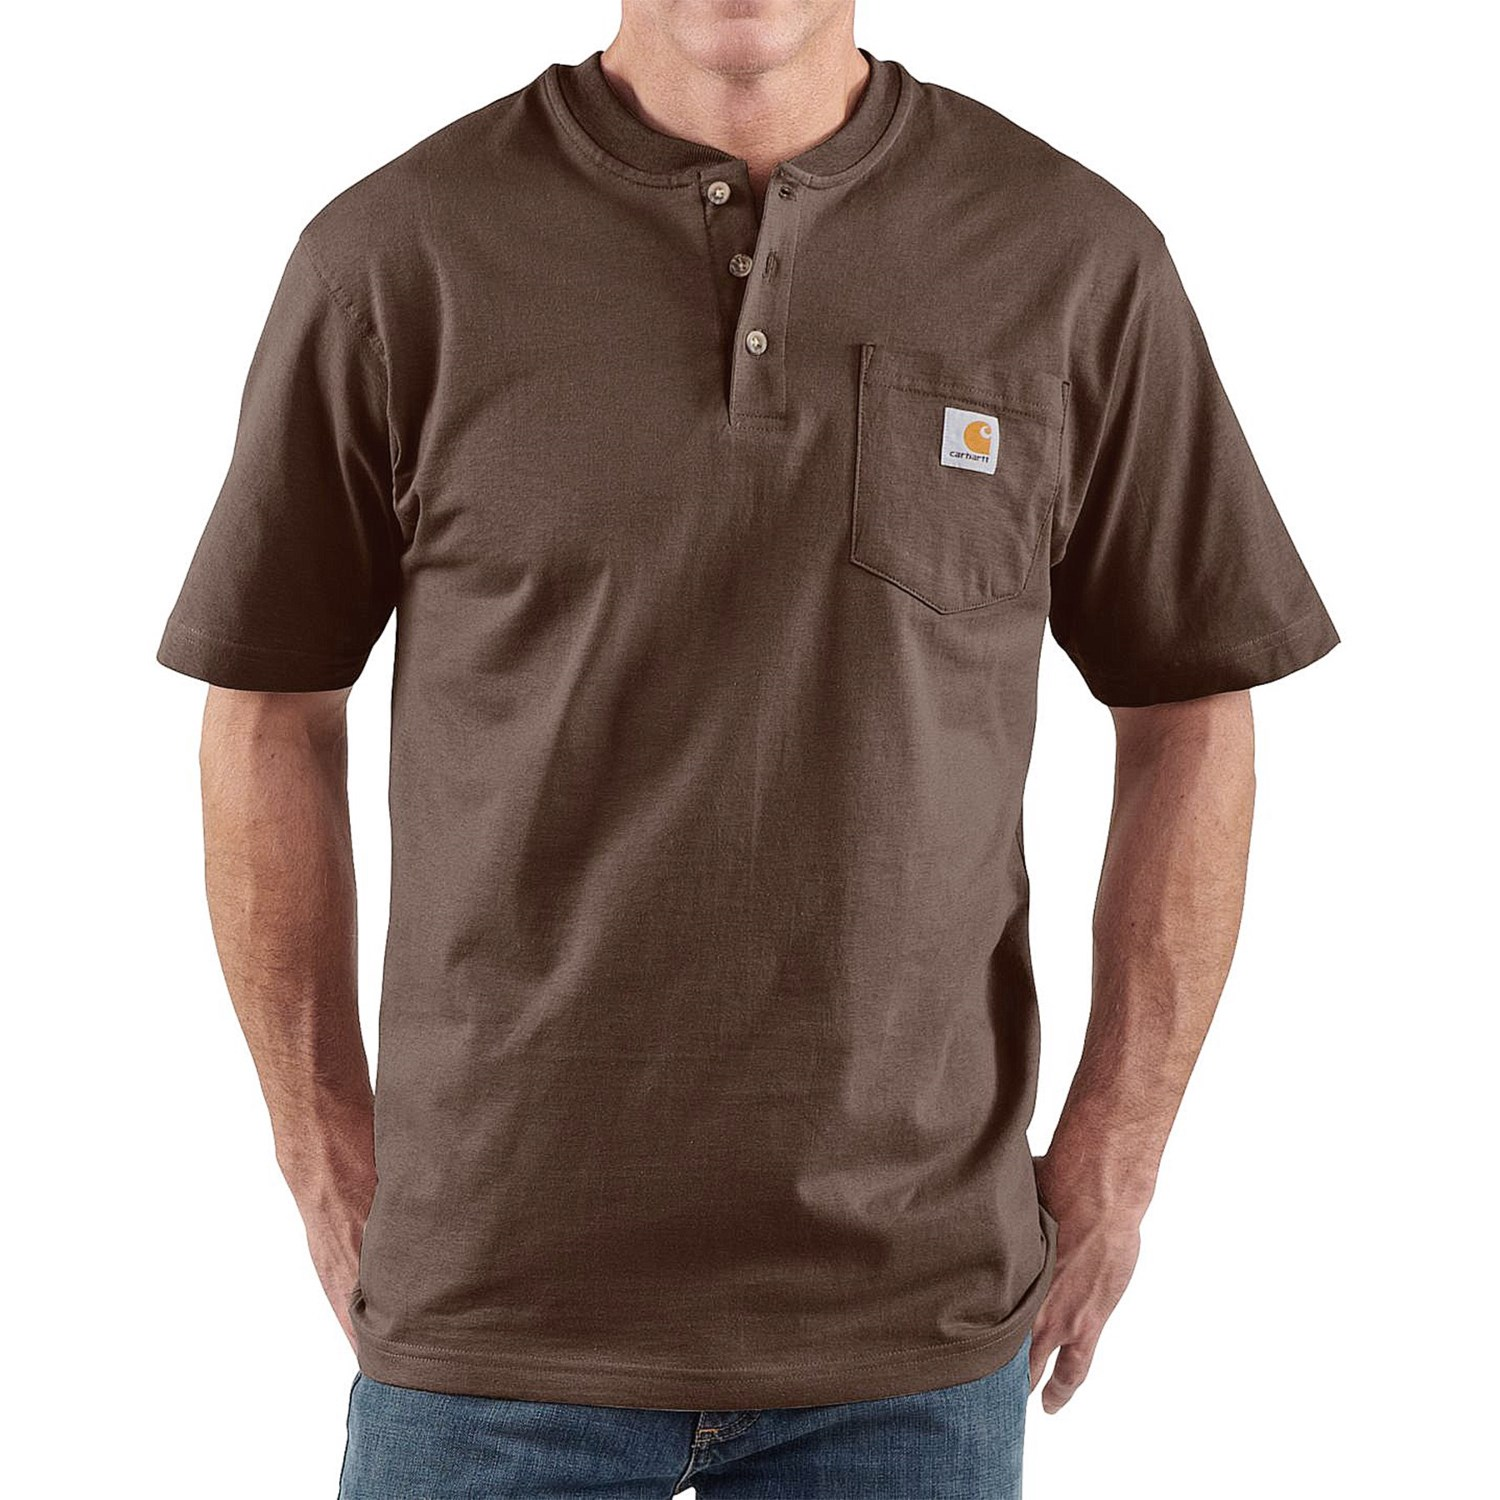 Sponsored Links Outside companies pay to advertise via these links when specific phrases and words are searched. Clicking on these links will open a new tab .